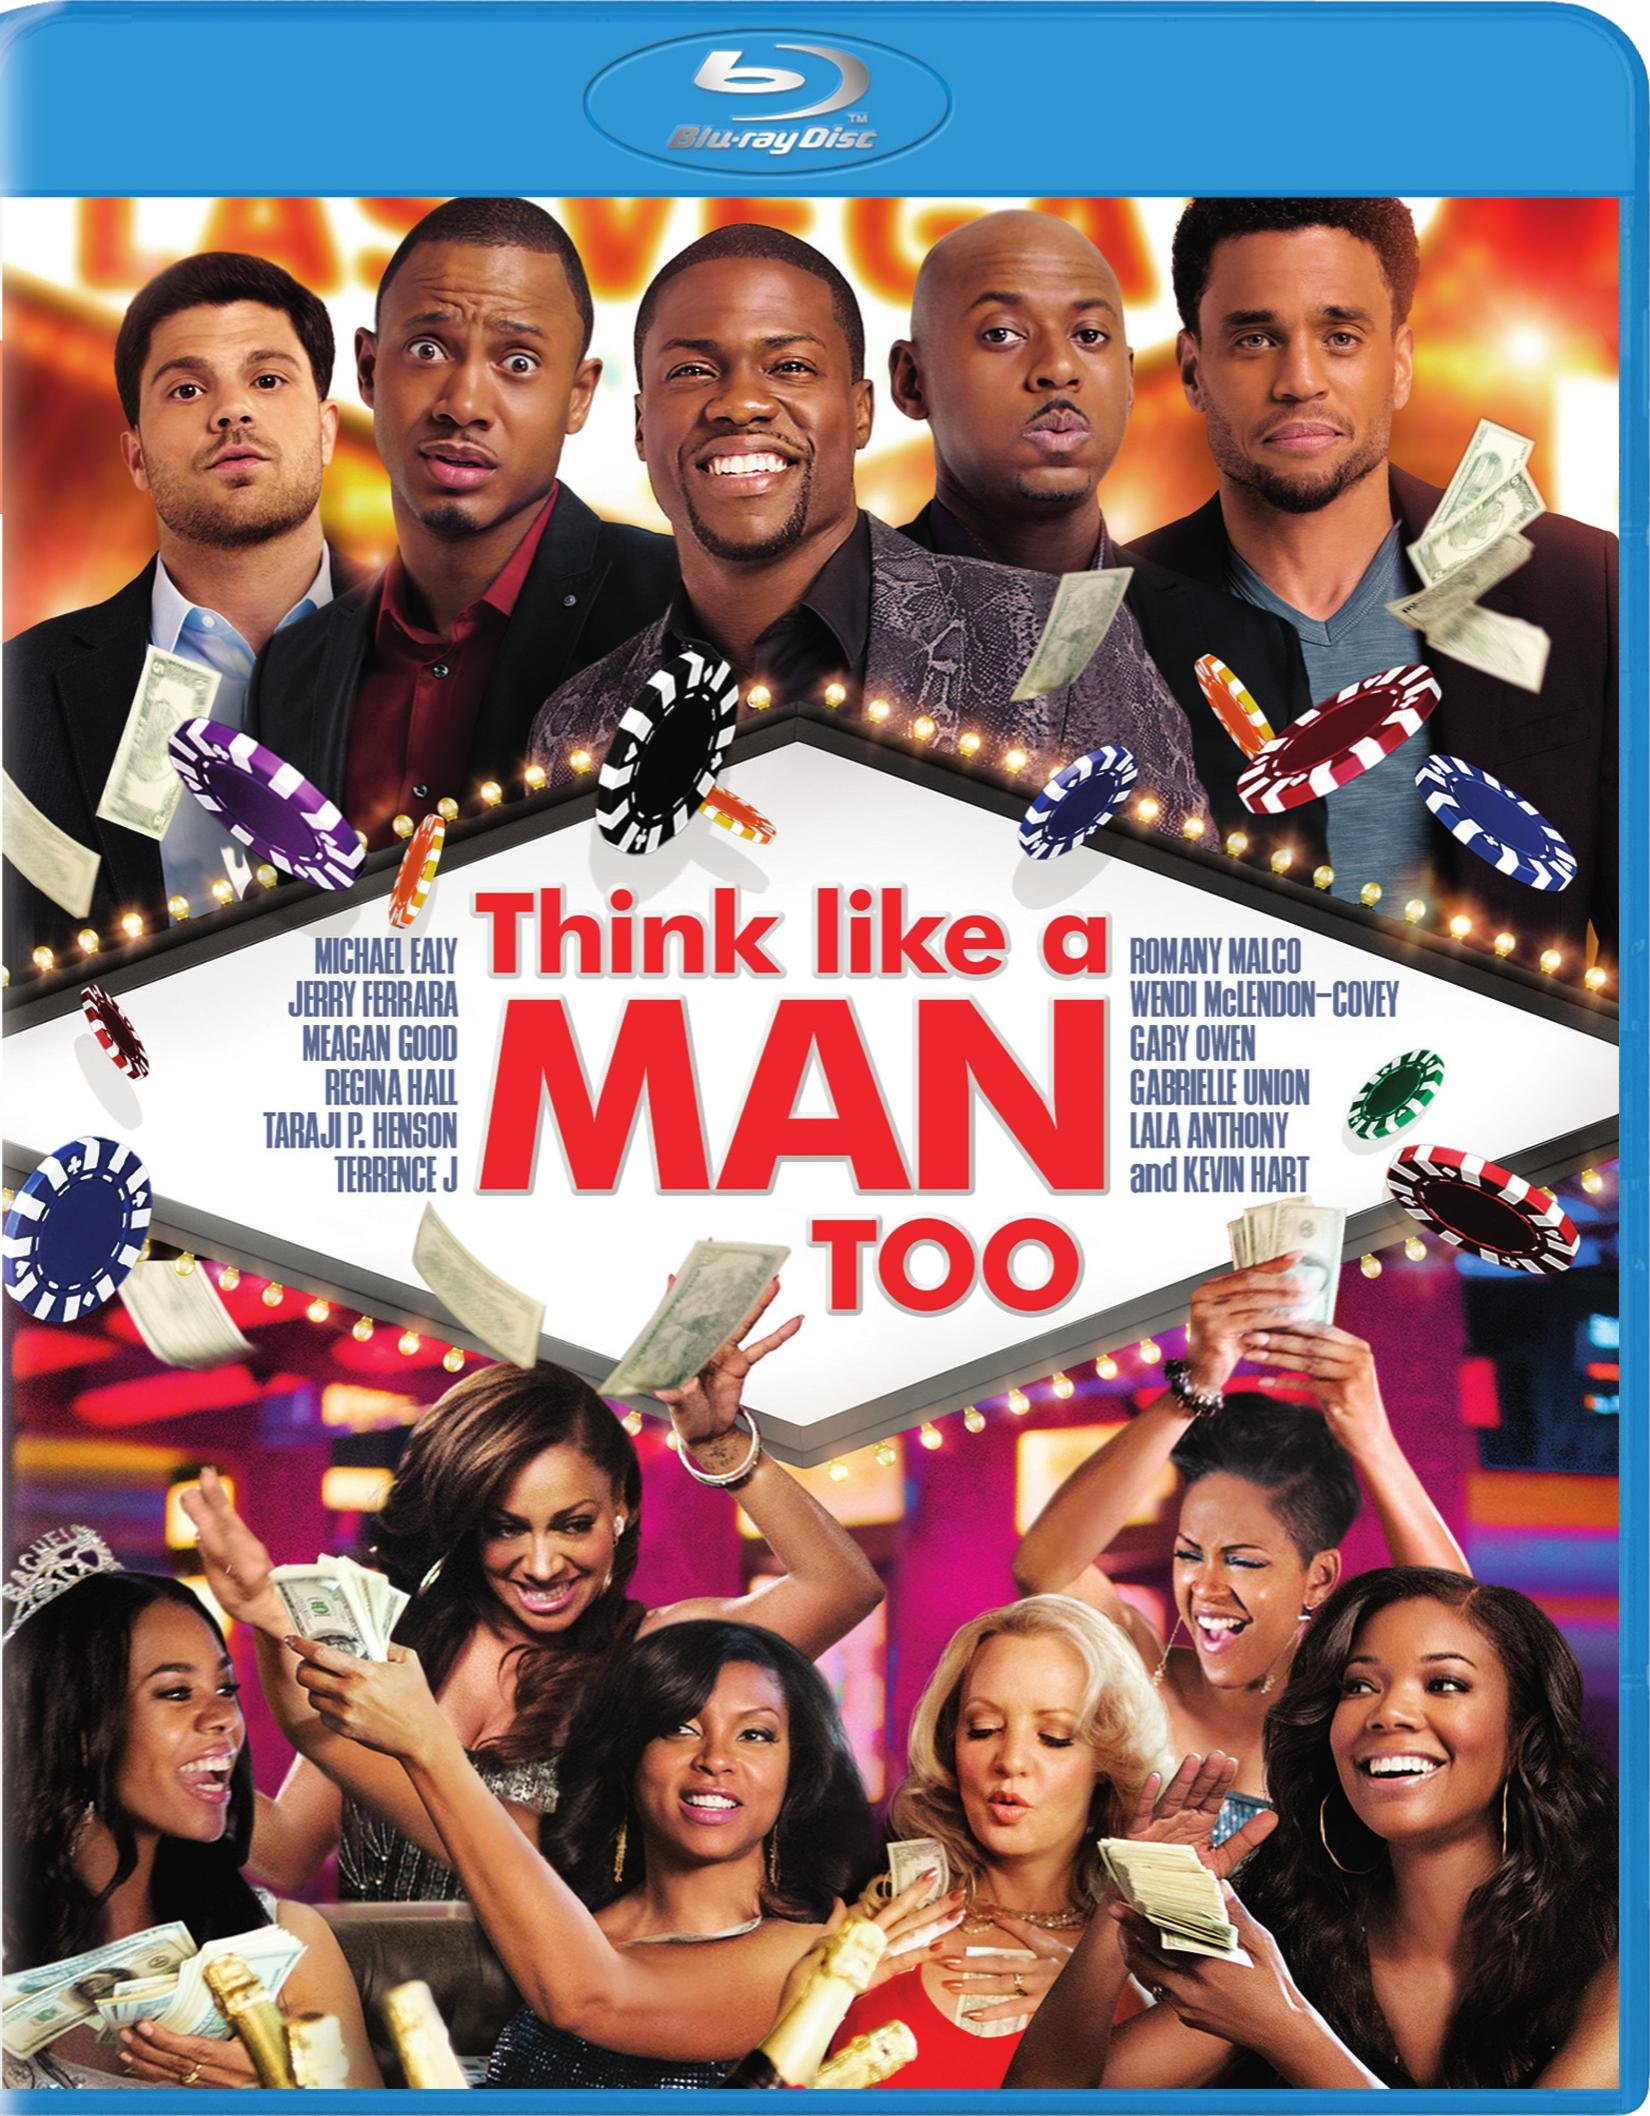 Think Like A Man Too Streaming : think, streaming, THINK, Blu-ray,, Sept., Blackfilm.com, Black, Movies,, Television,, Theatre